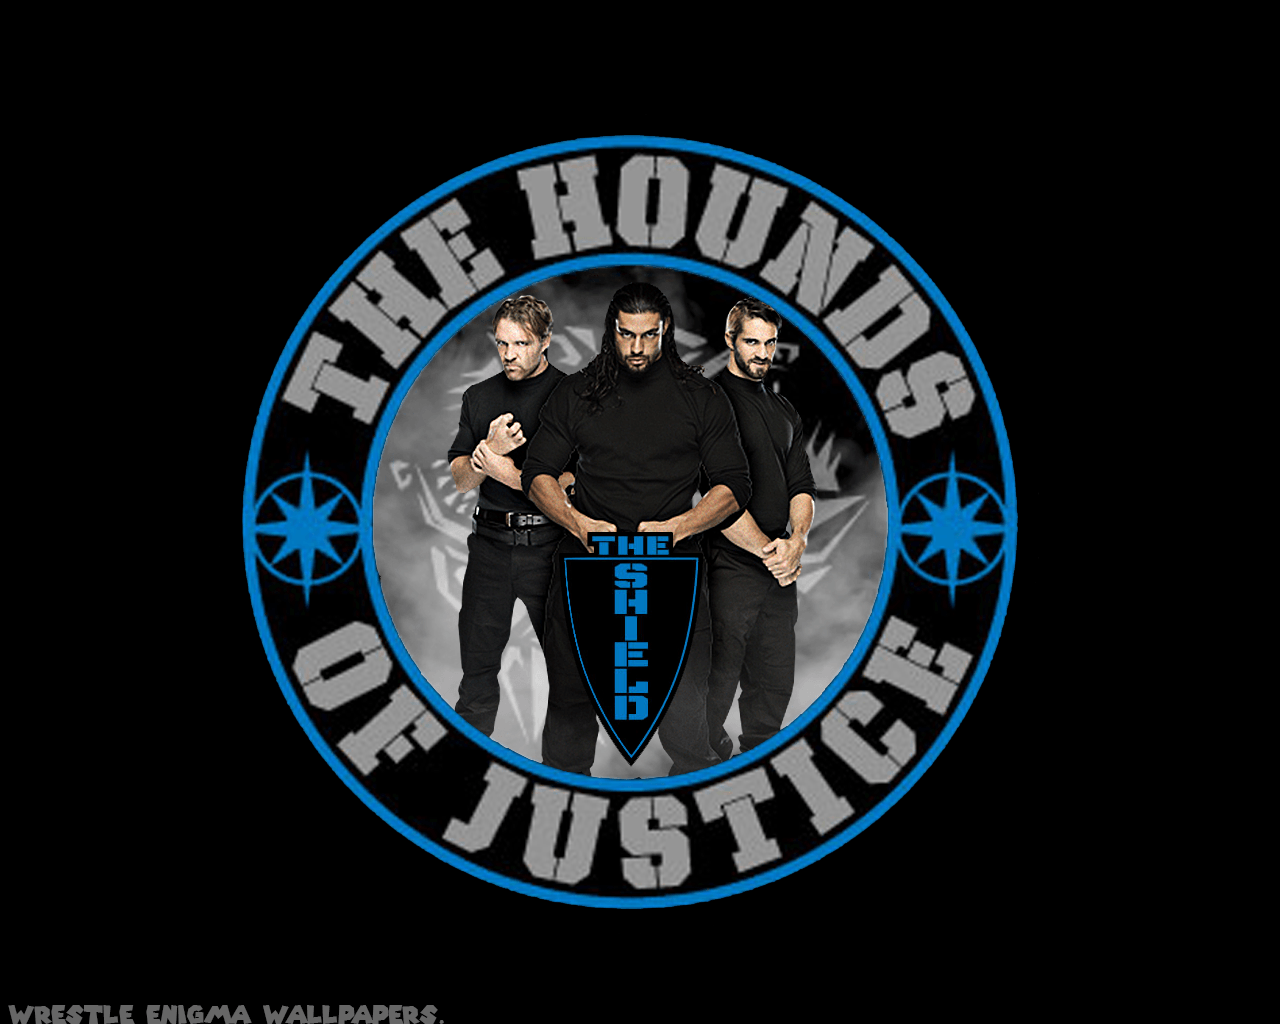 WWE: The Shield Wallpapers